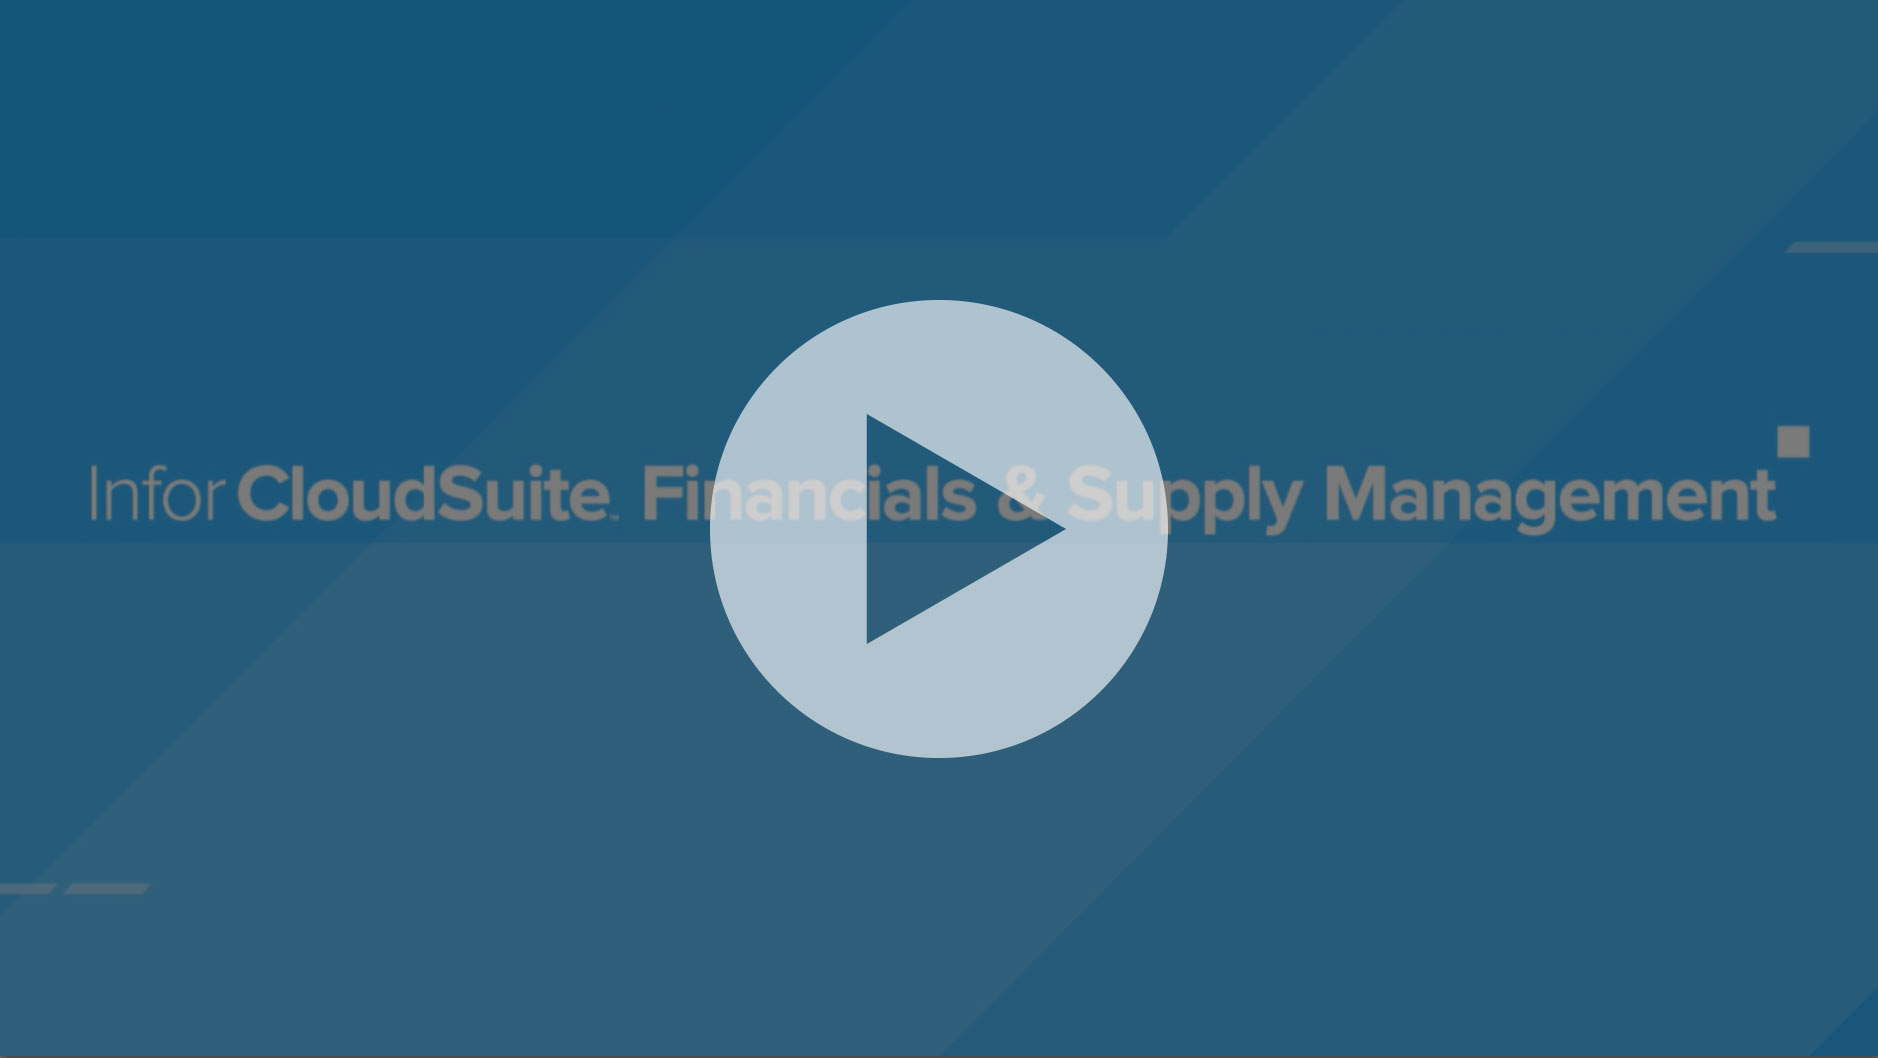 Finance and Supply Video Graphic